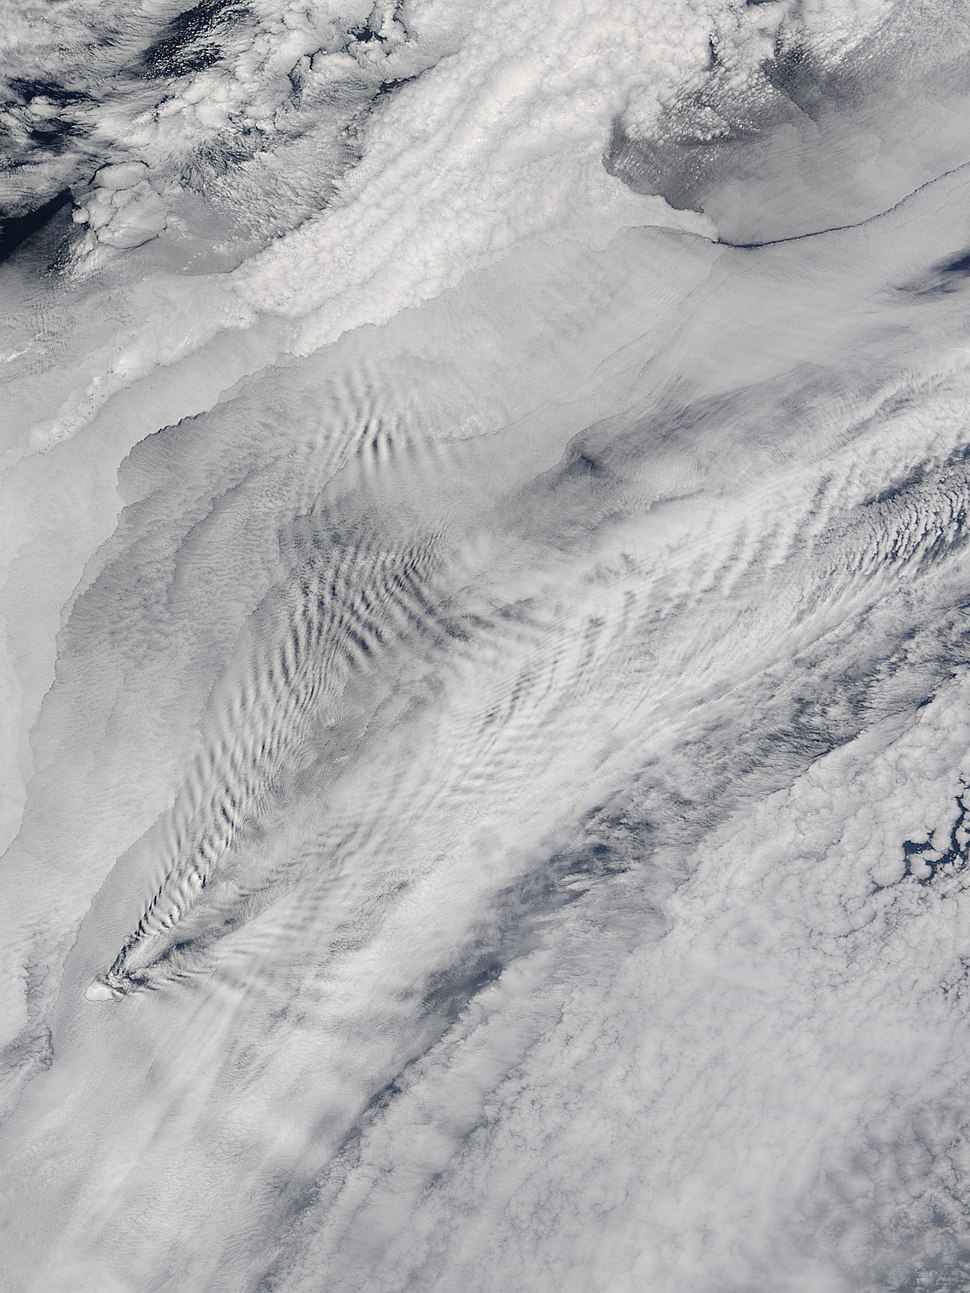 Cloud Patterns Over the Prince Edward Islands